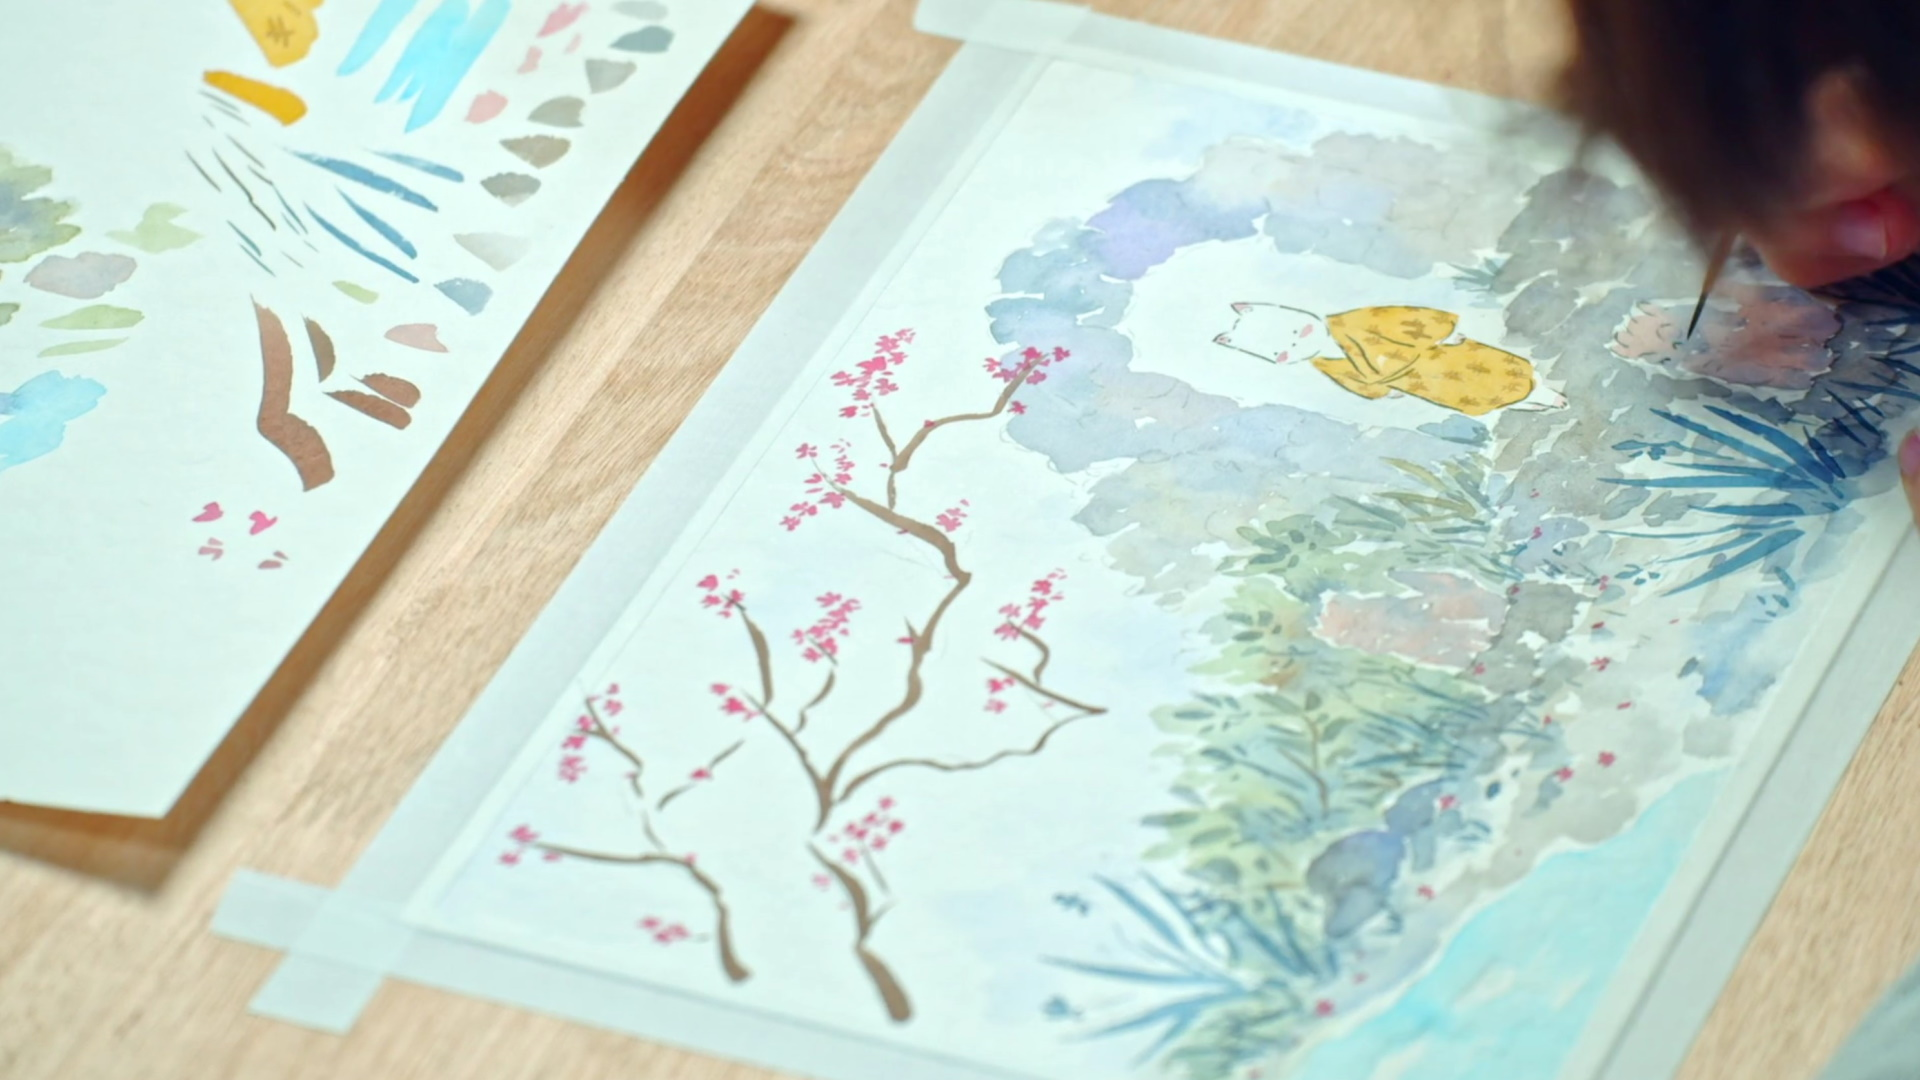 Watercolor illustration with Japanese influence Domestika course